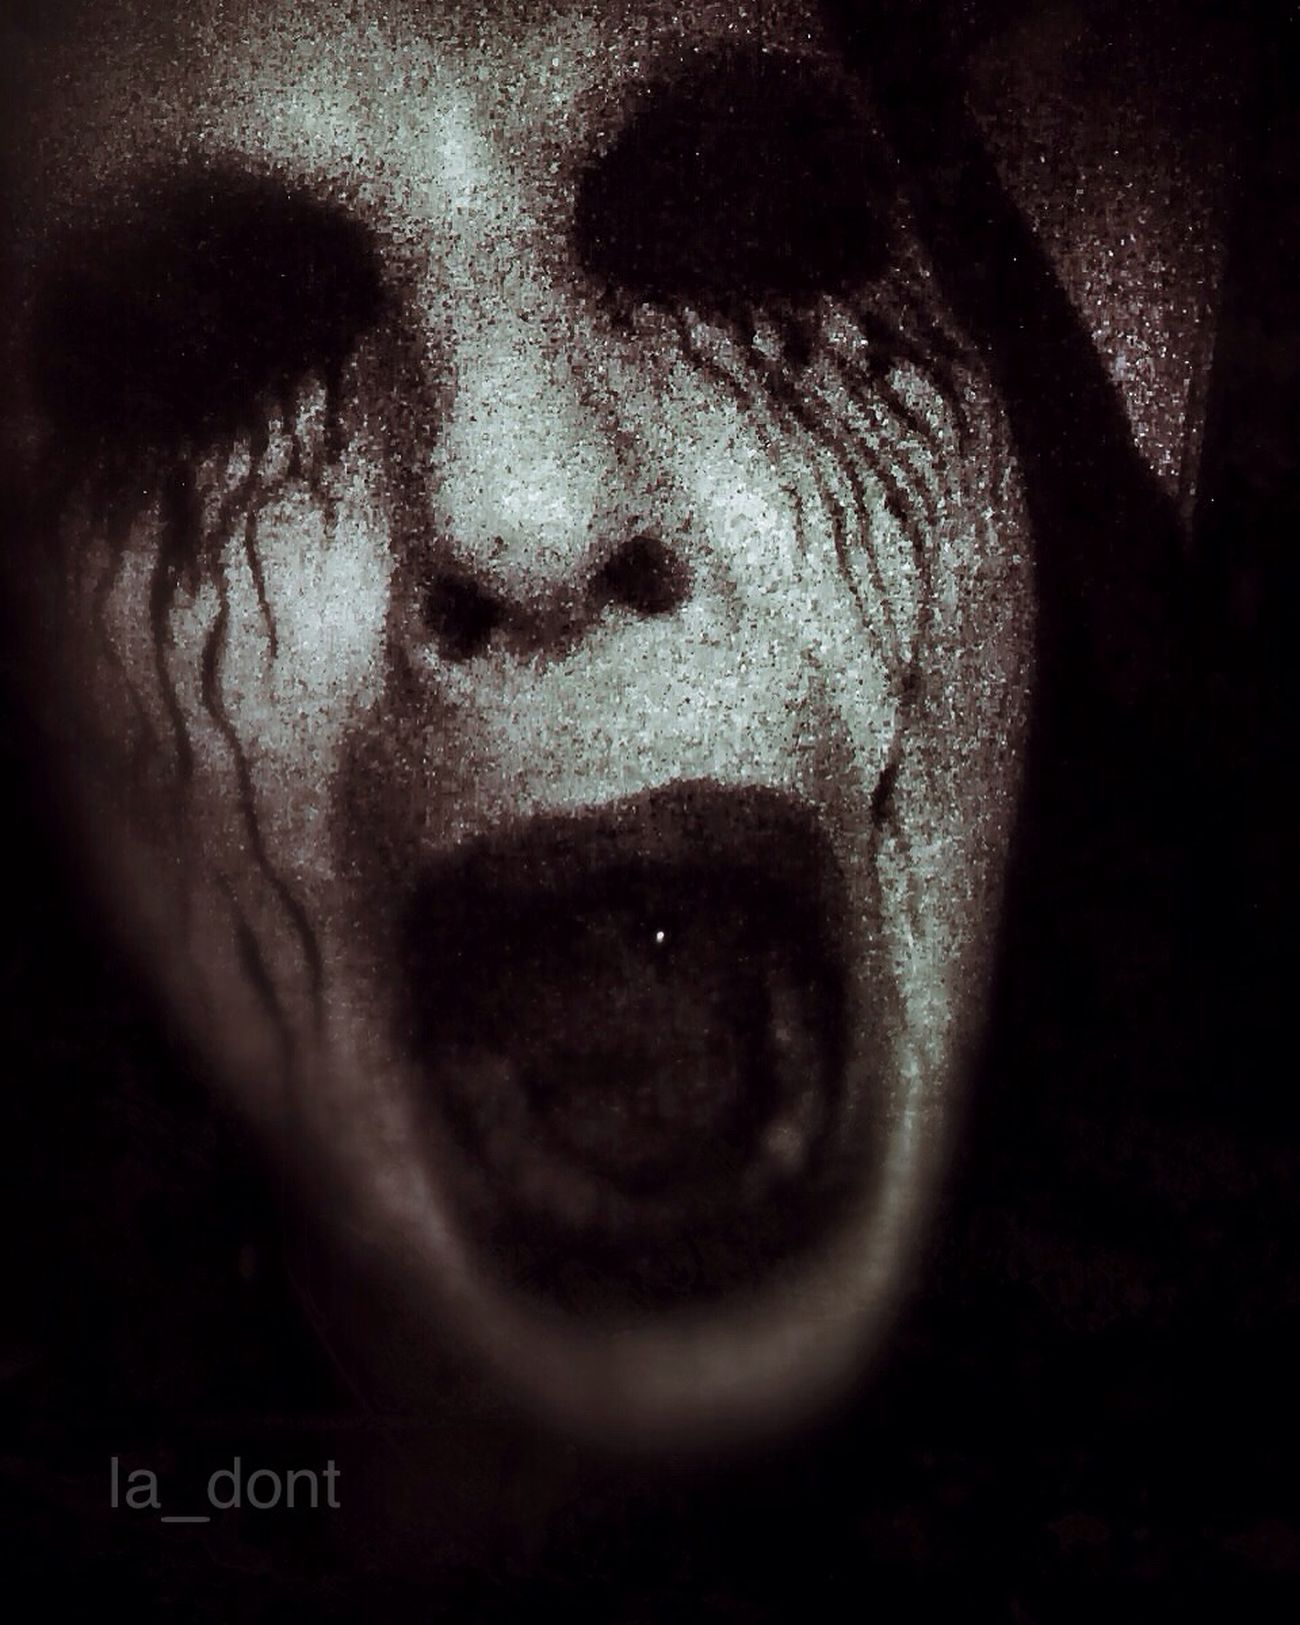 Hear the pandemonium Killing Joke Darkness Black & White Open Edit Blackandwhite Dark Edit NEM Self Look Into The Darkness  Dark Art Self Portrait Darkart Goth Dark Portrait Monochrome